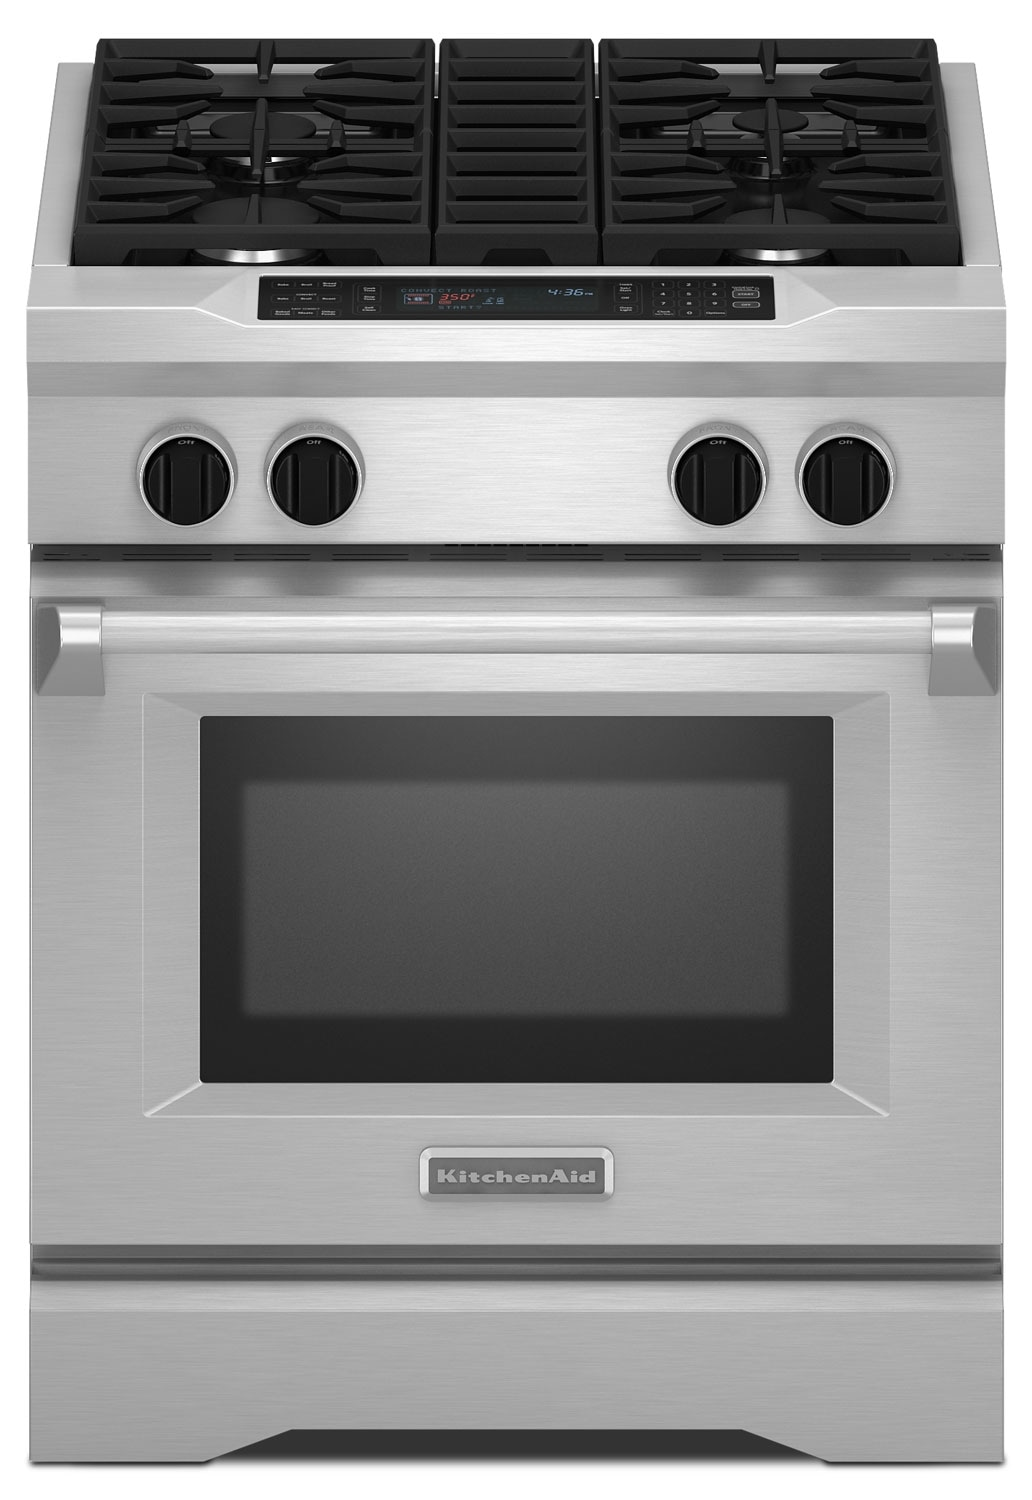 Cooking Products - KitchenAid Stainless Steel Slide-In Dual Fuel Range (4.1 Cu. Ft.) - KDRS407VSS